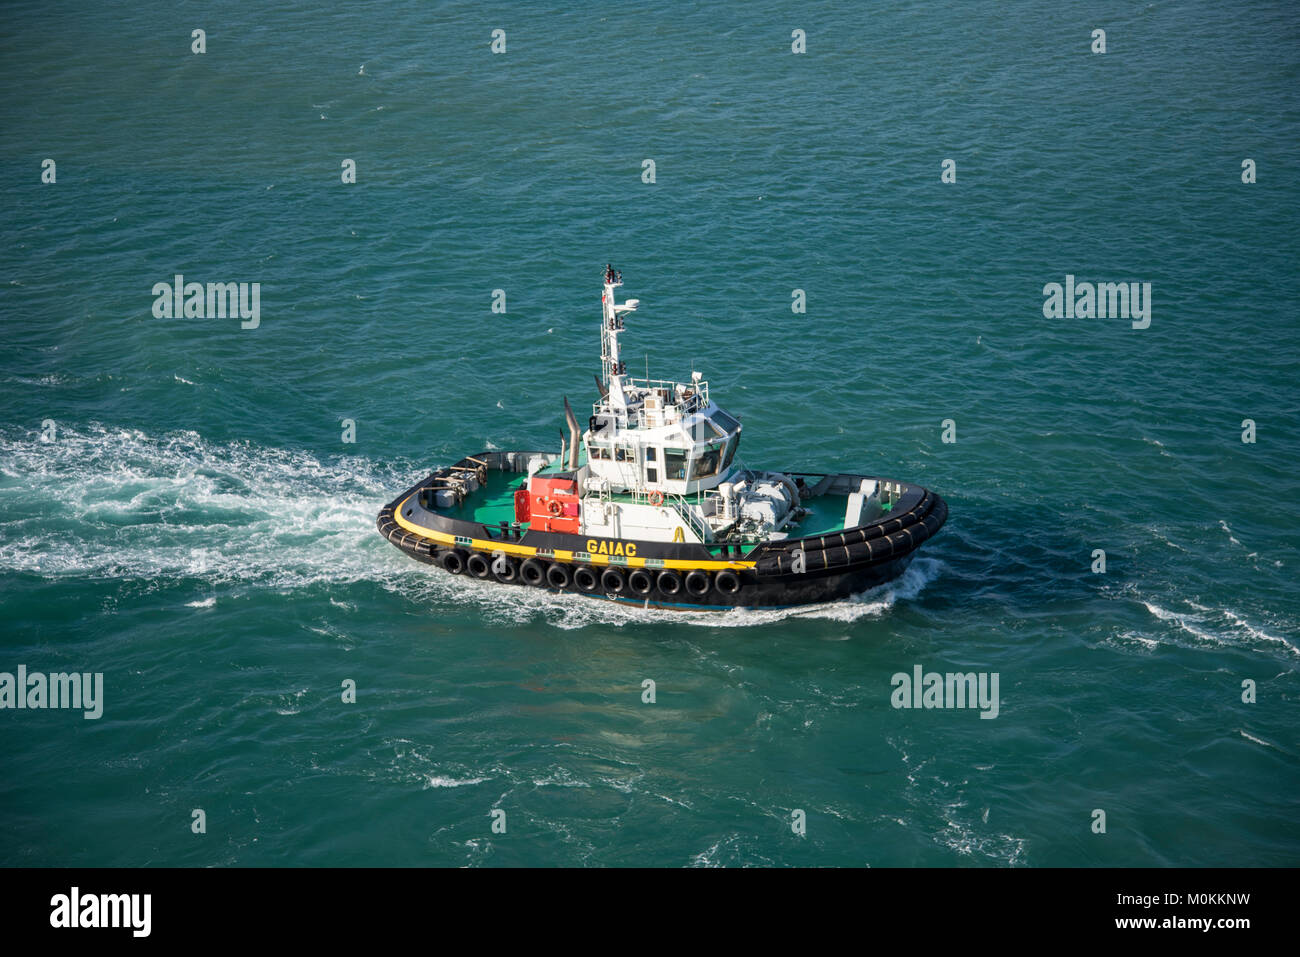 Tug boat in operation from the port of Noumea. - Stock Image